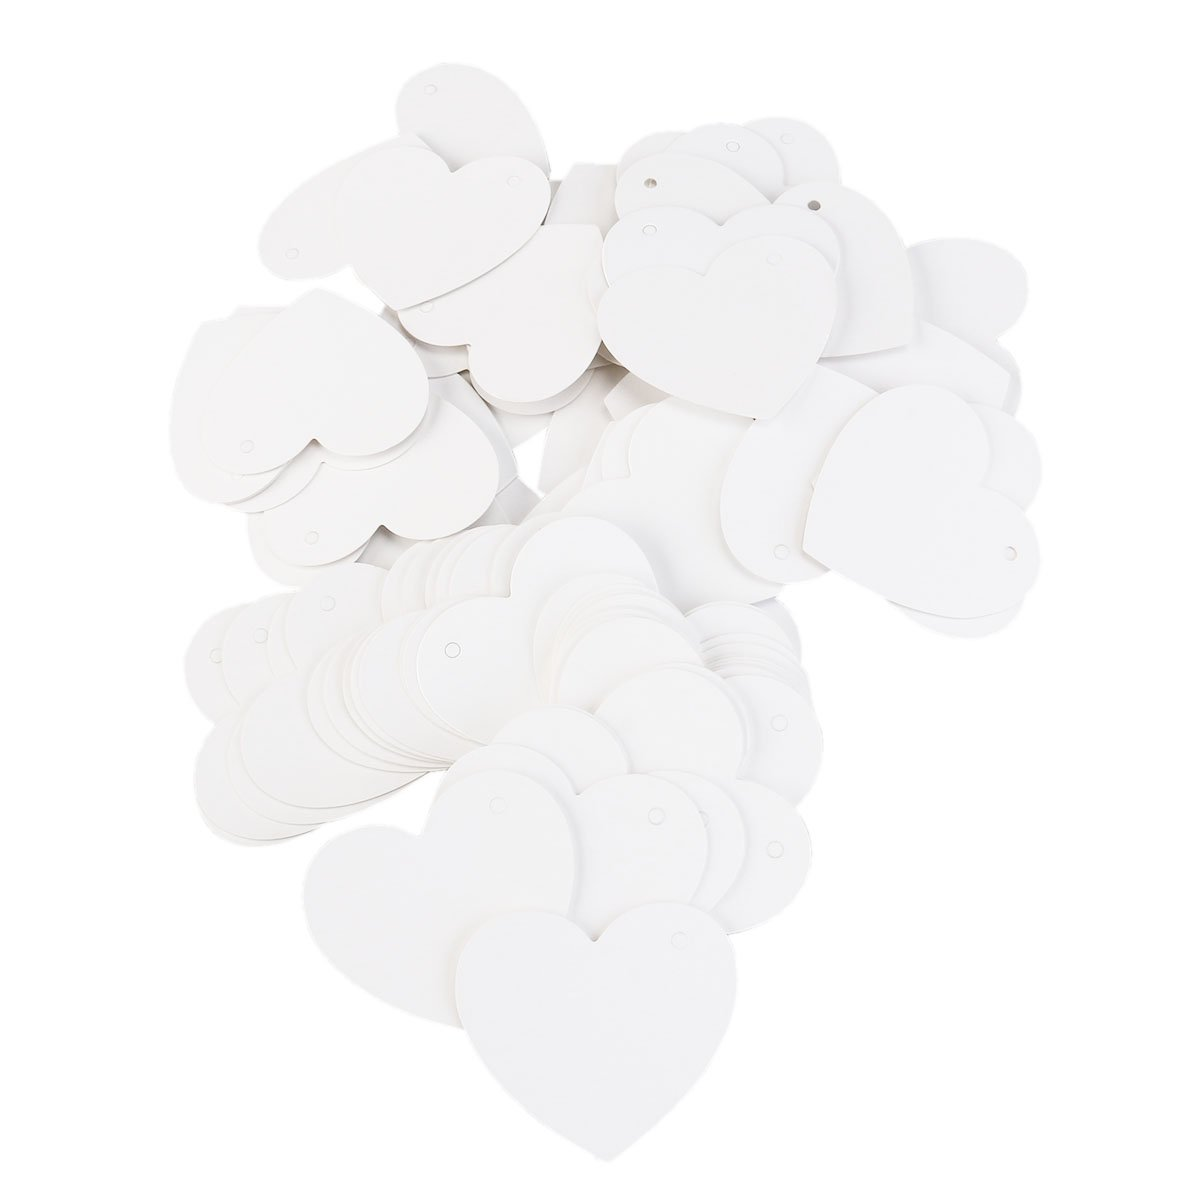 Tinksky 100pcs Heart Shaped Paper Card Valentines / Wedding/ Wish Tree Tags , Wedding Favors (White)